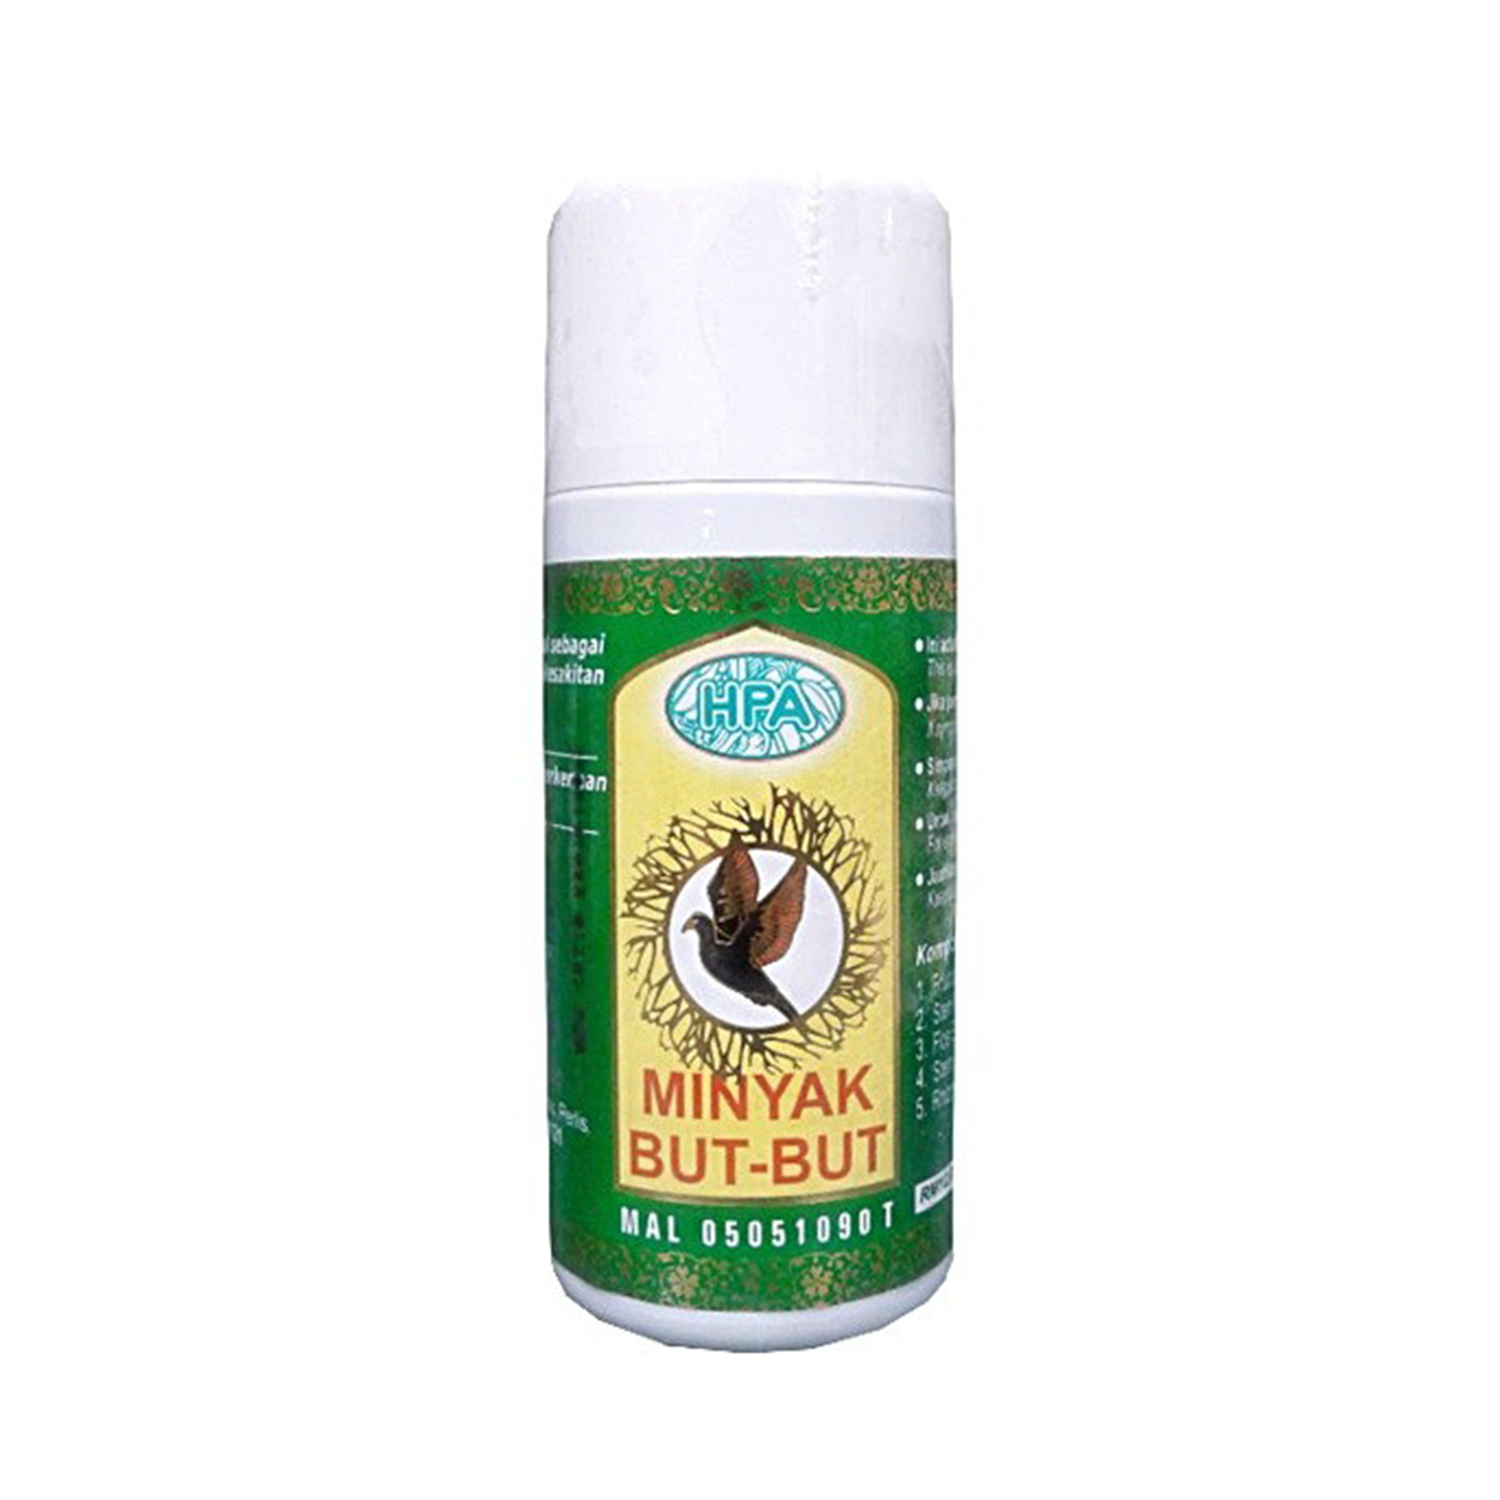 Hpa Minyak But-But (90Ml)